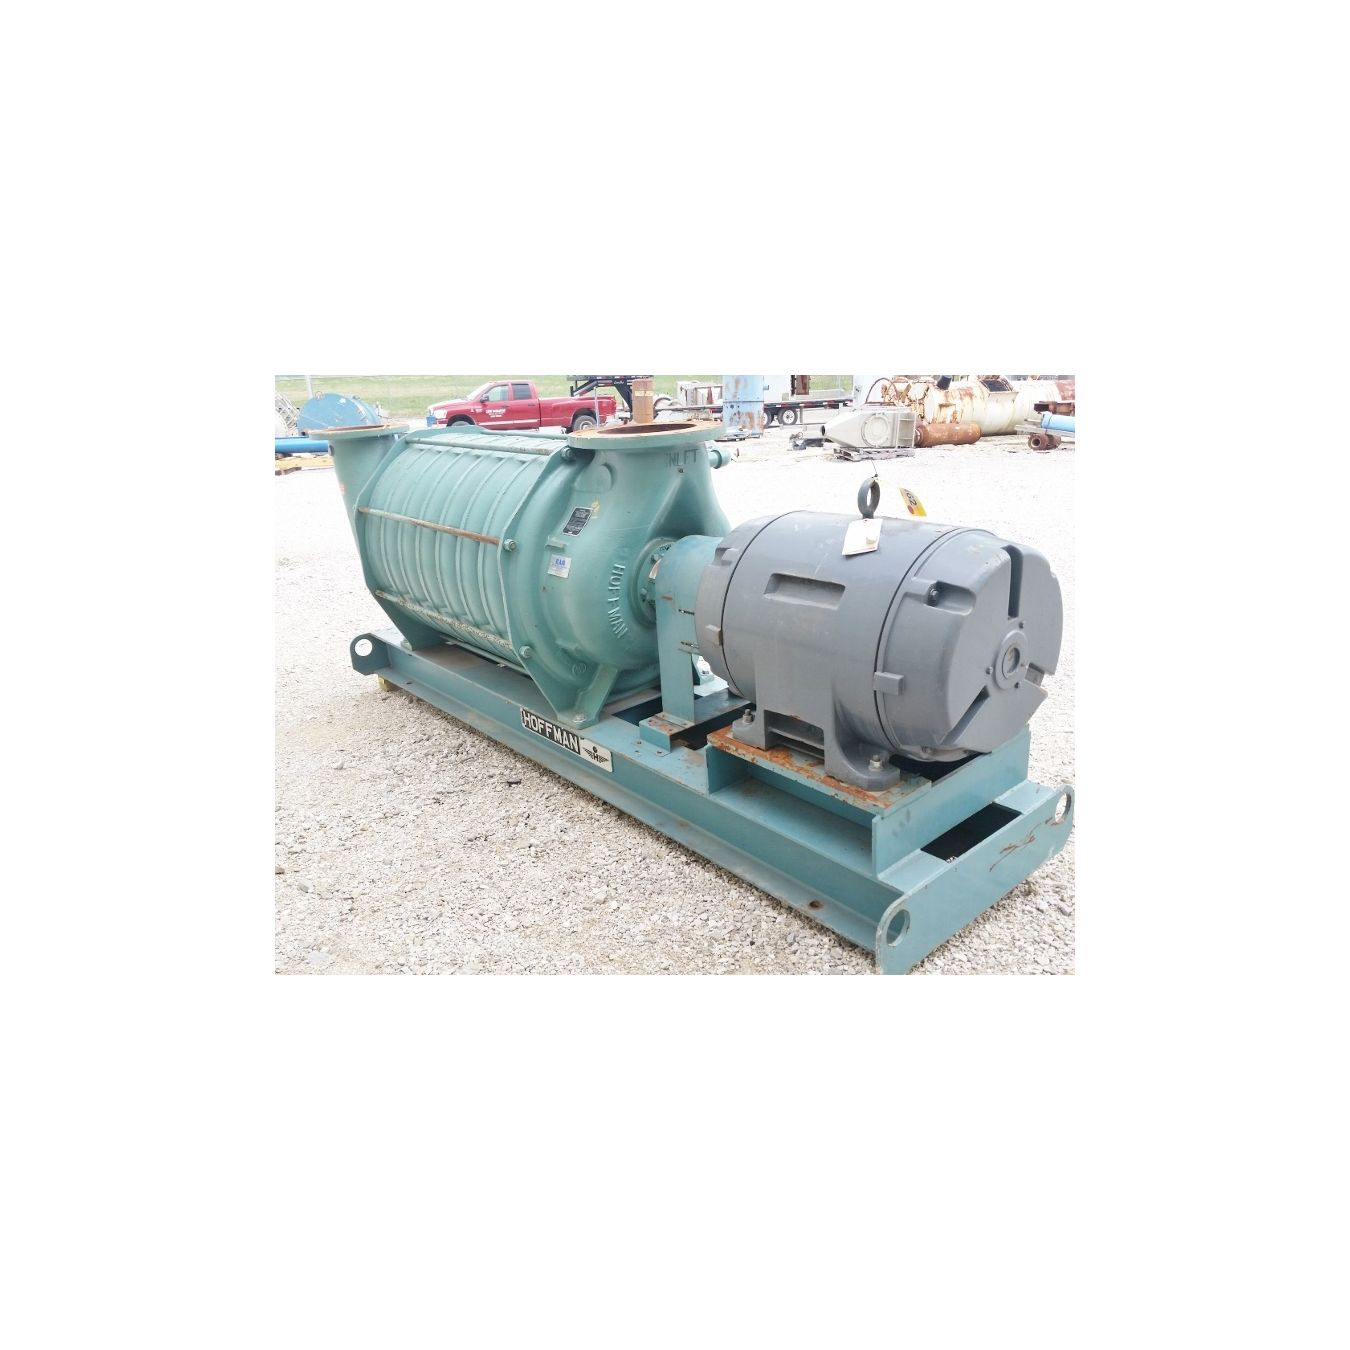 Hoffman Centrifugal Blower : Used hoffman multi stage centrifugal blower model b